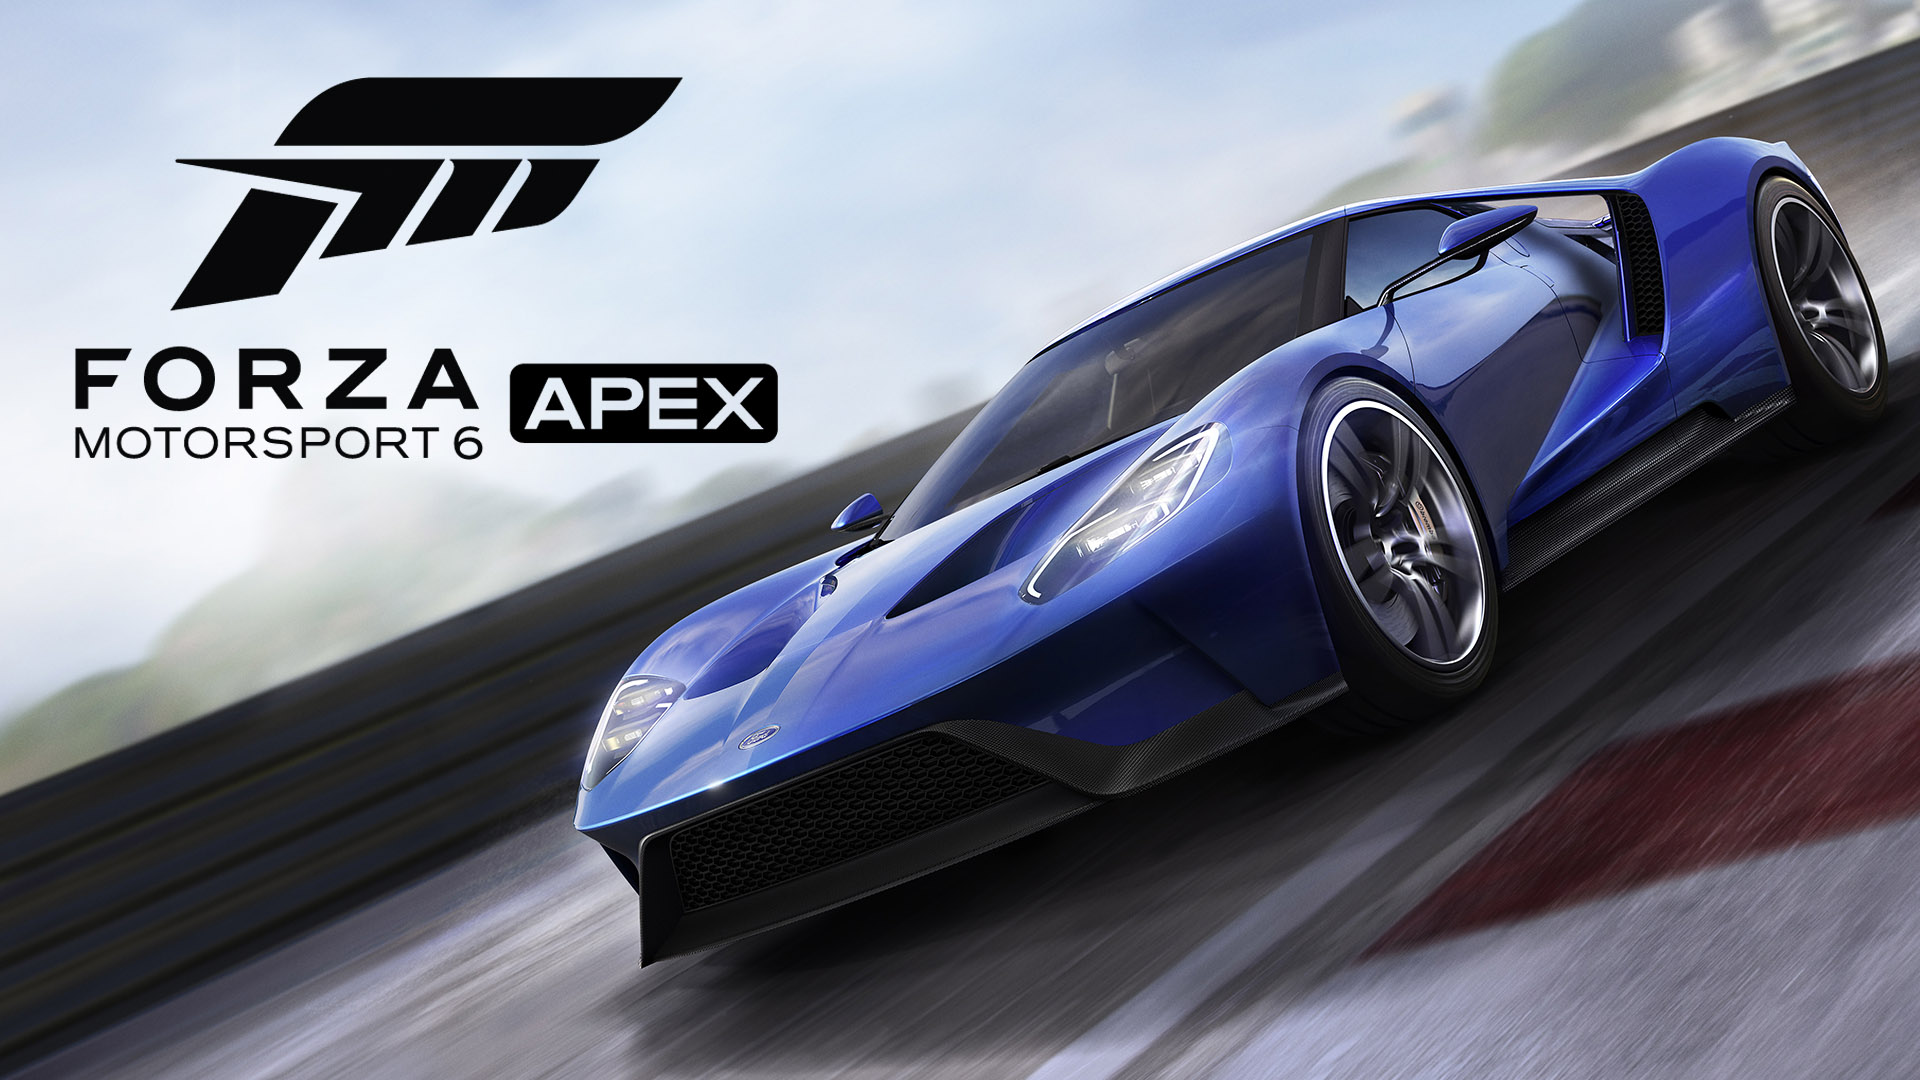 Forza Motorsport 6: Apex Open Beta Details